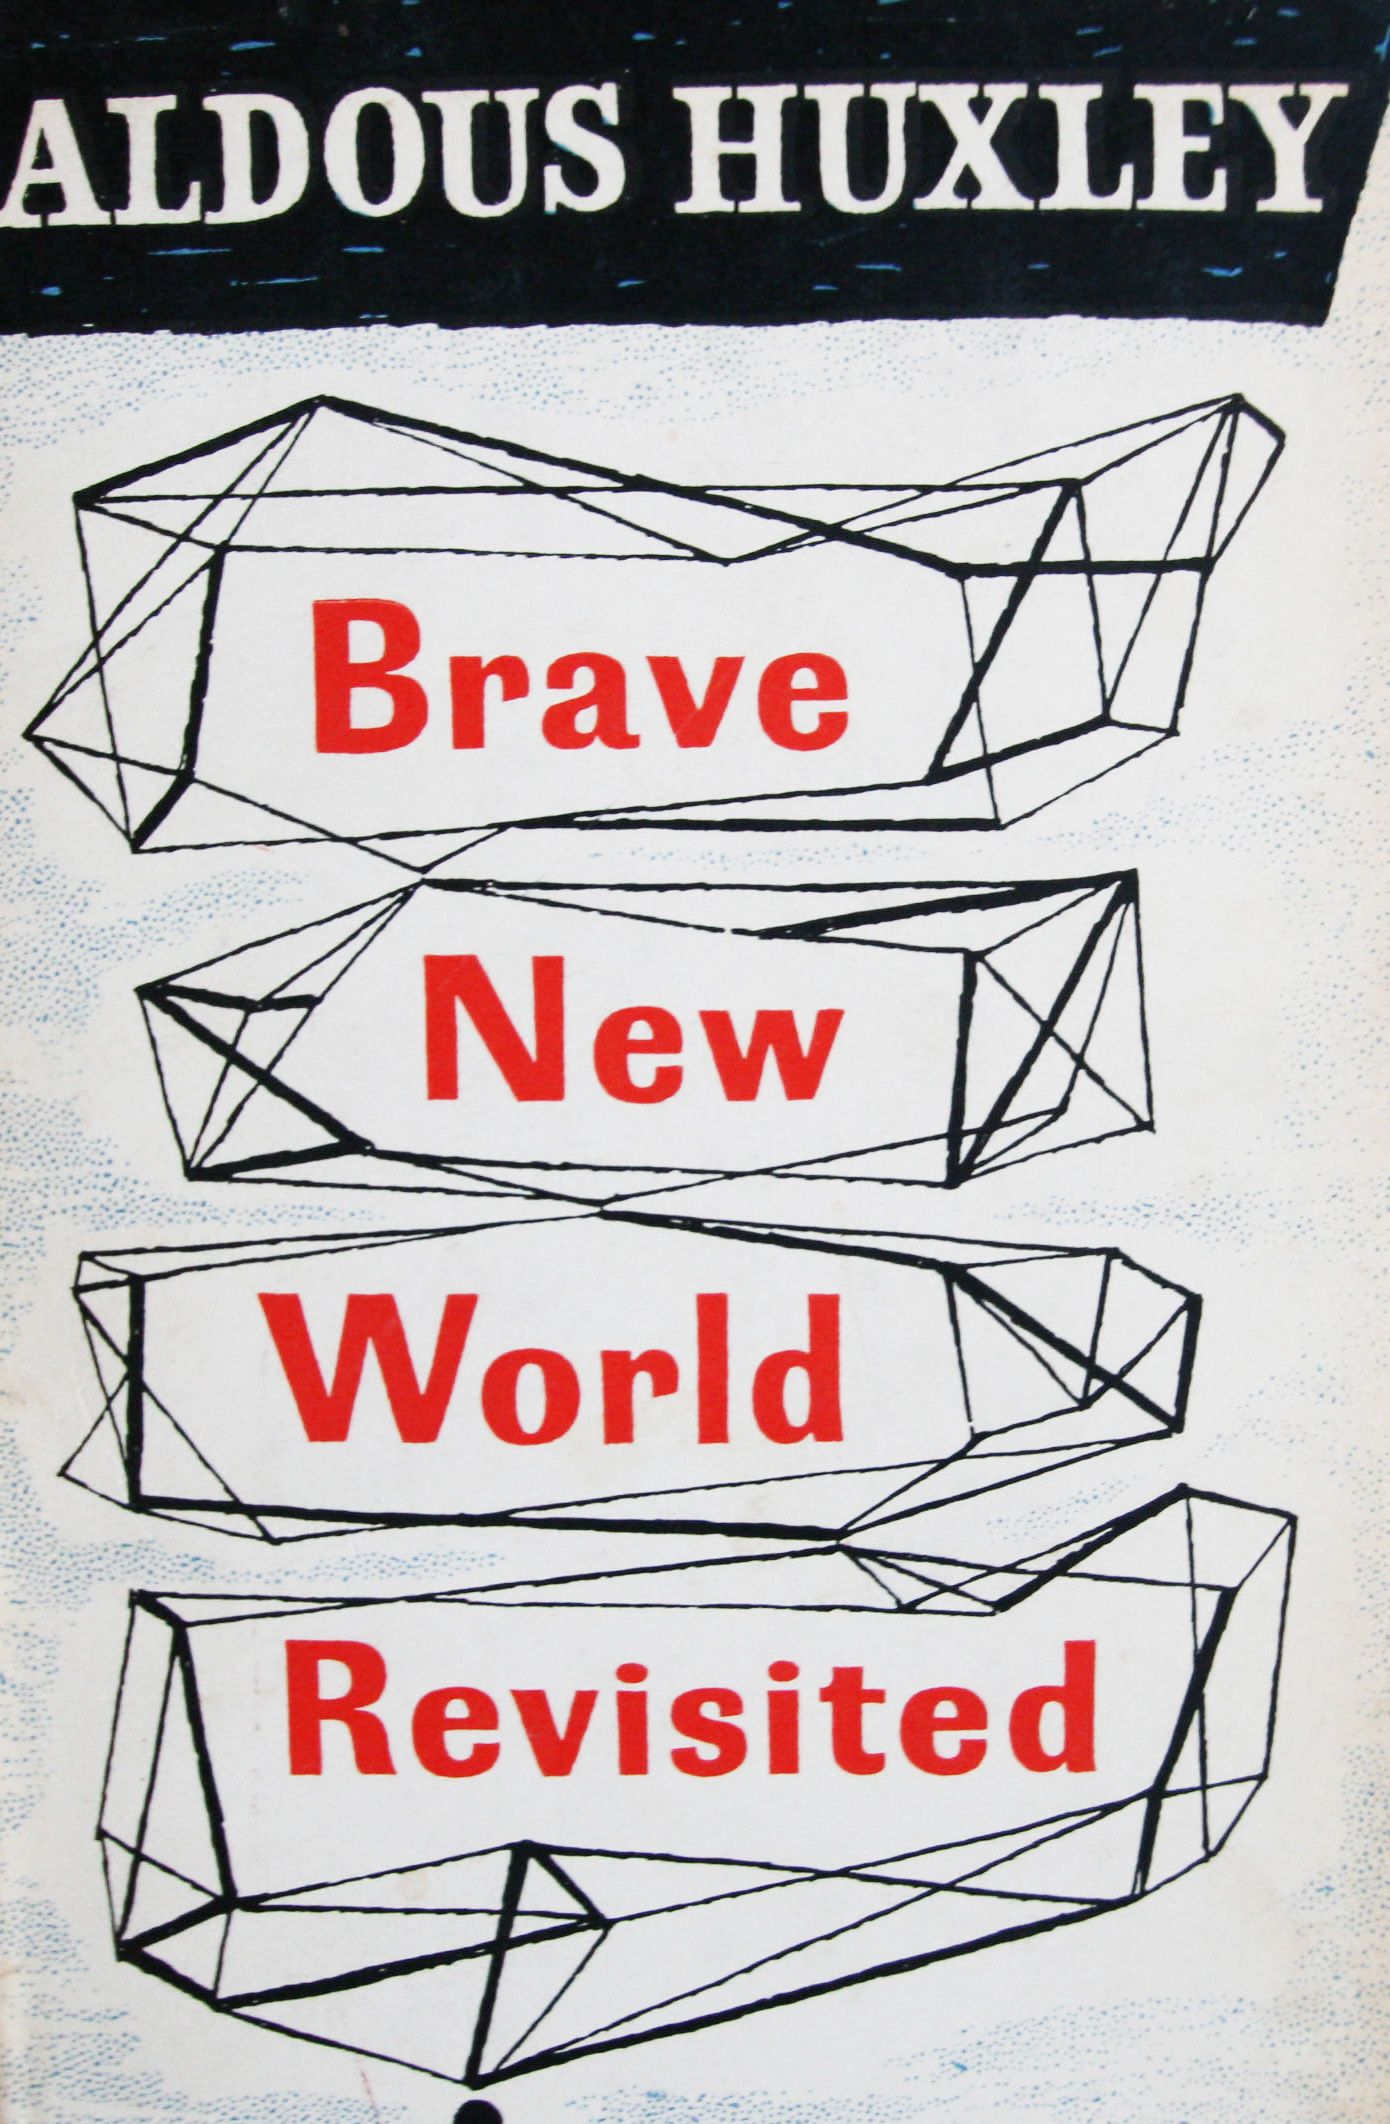 aldous huxley brave new world revisited first edition